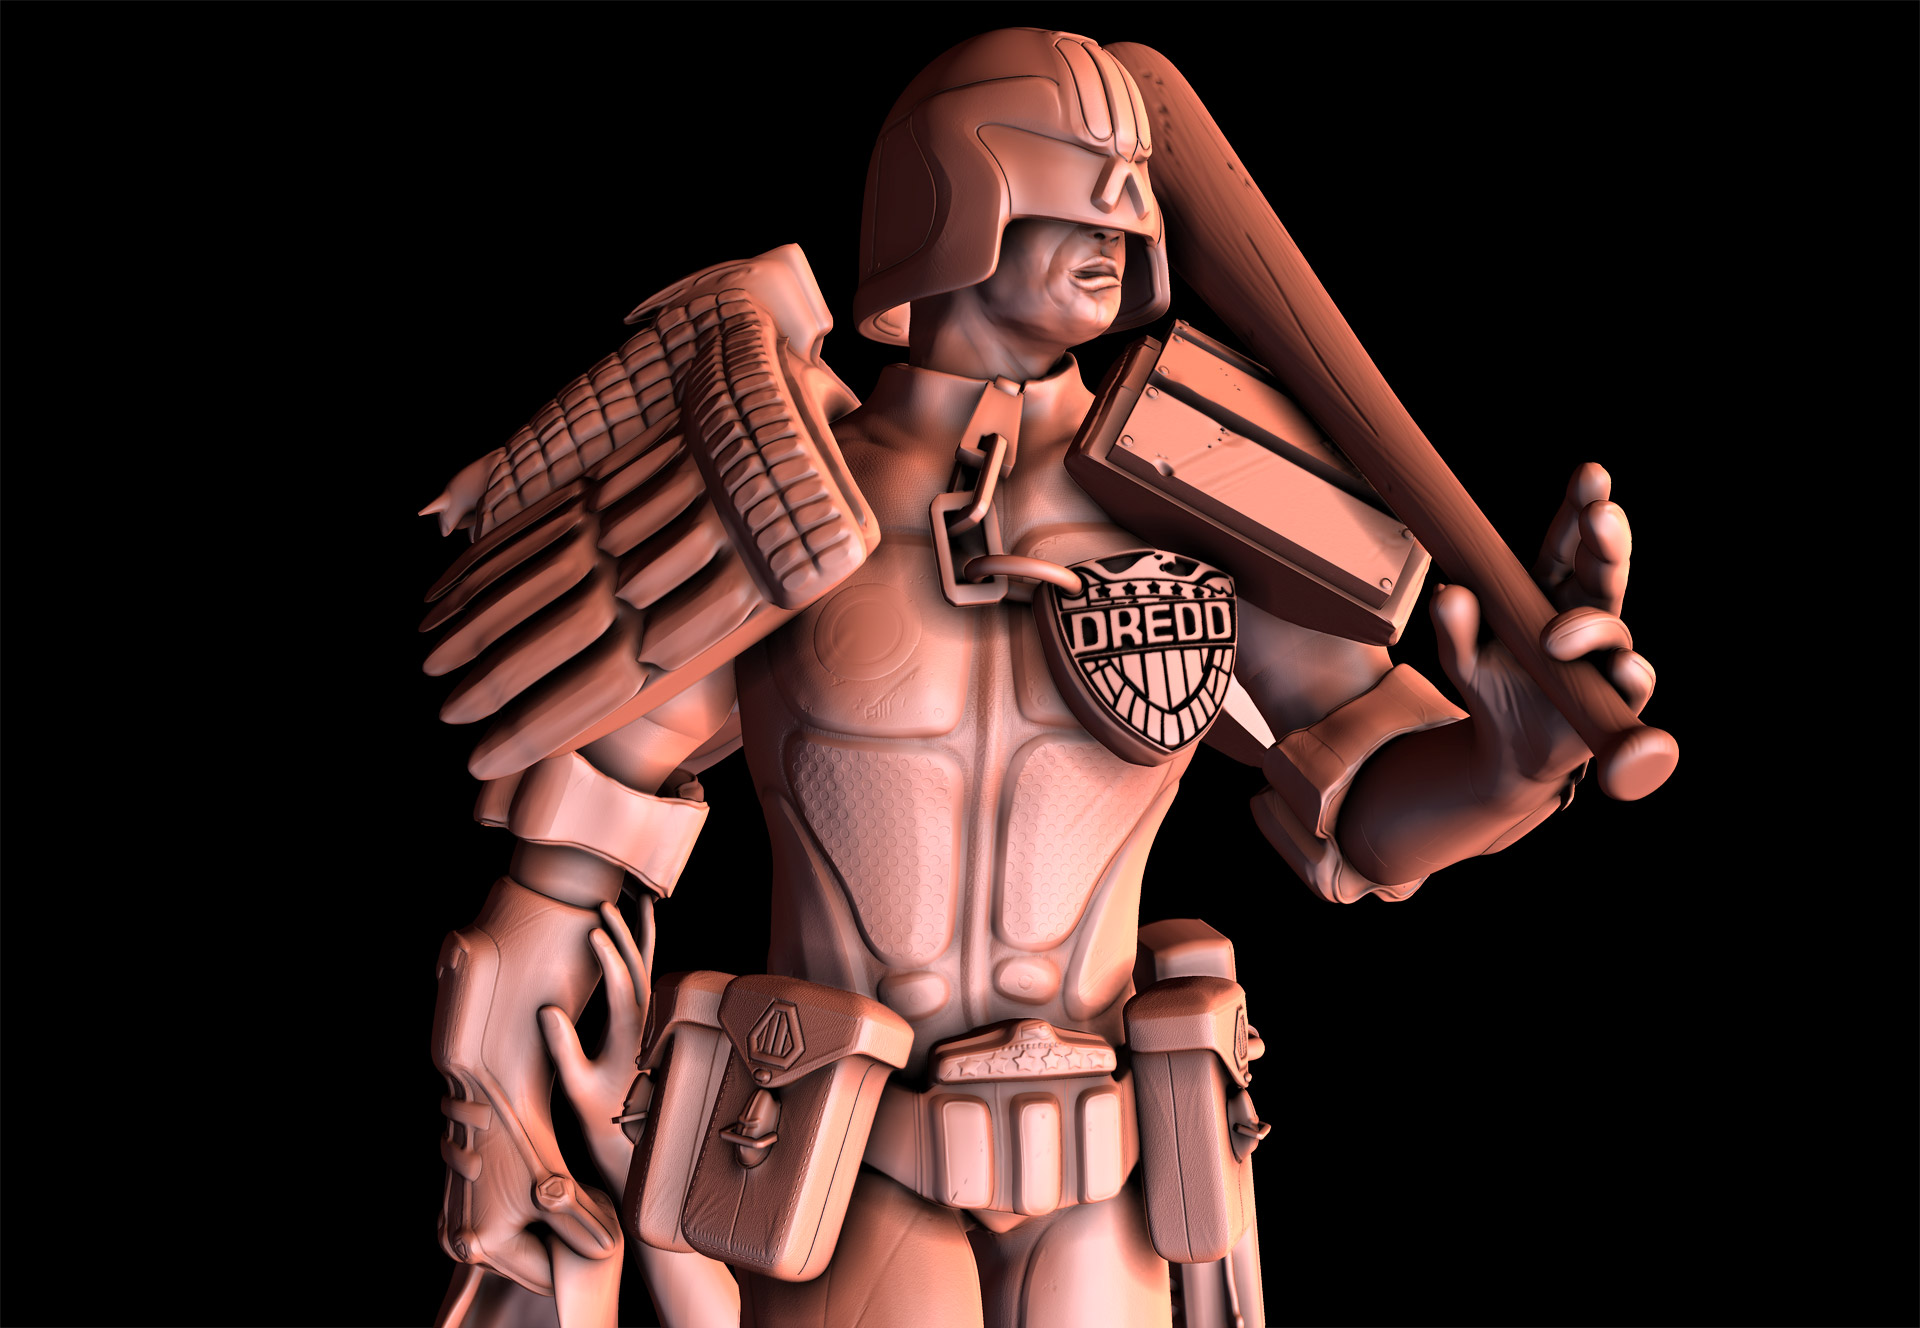 judge_dredd_mudbox_clay_render_2.jpg